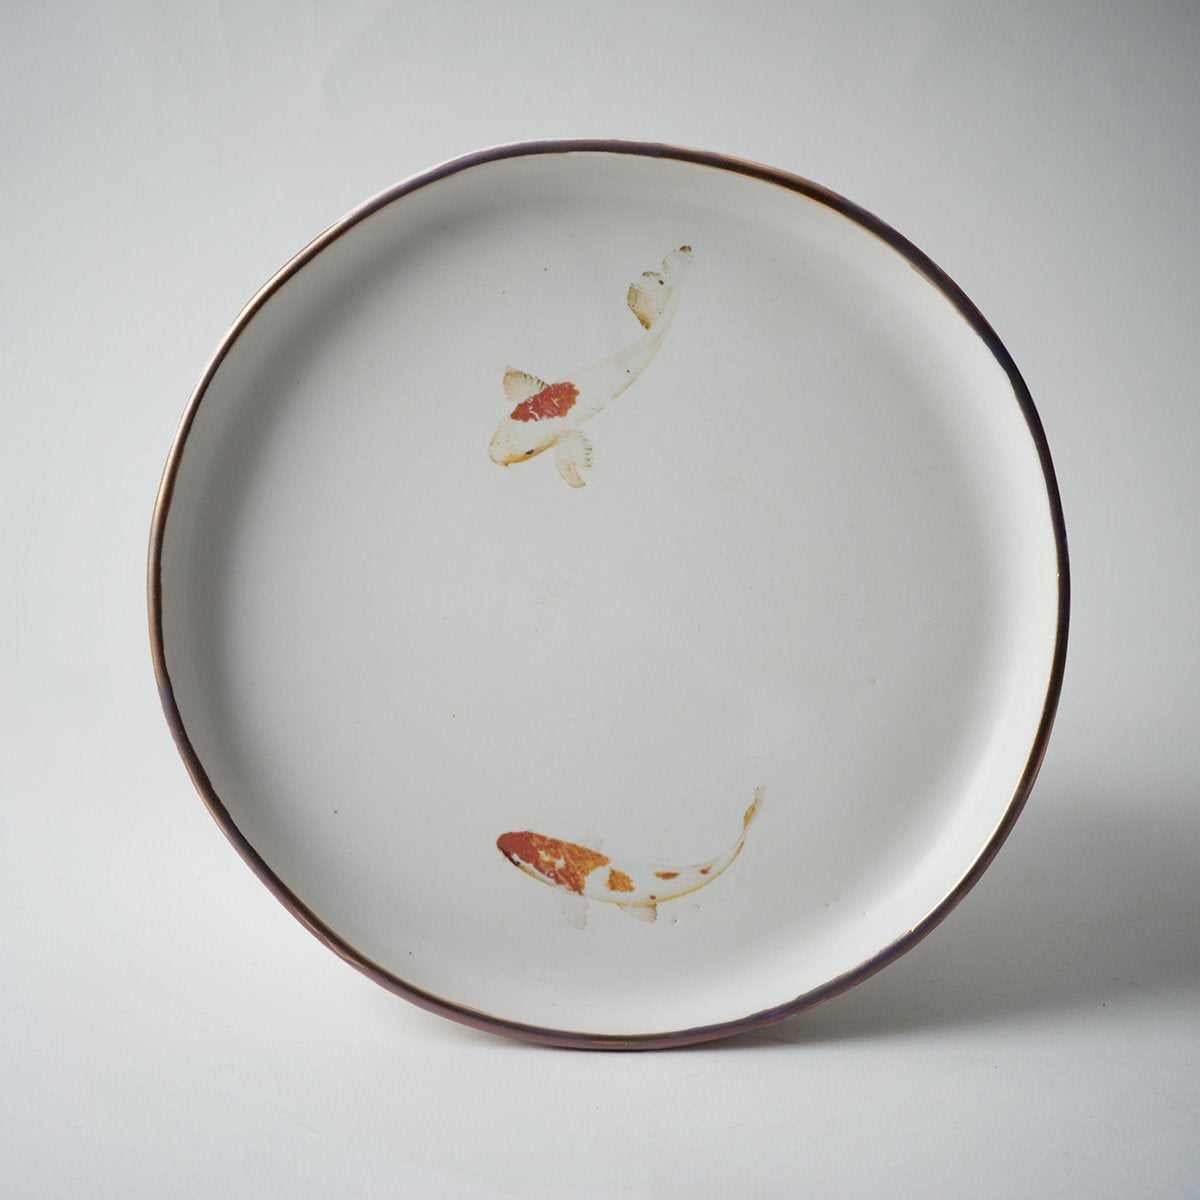 KOI FISH PLATE- medium